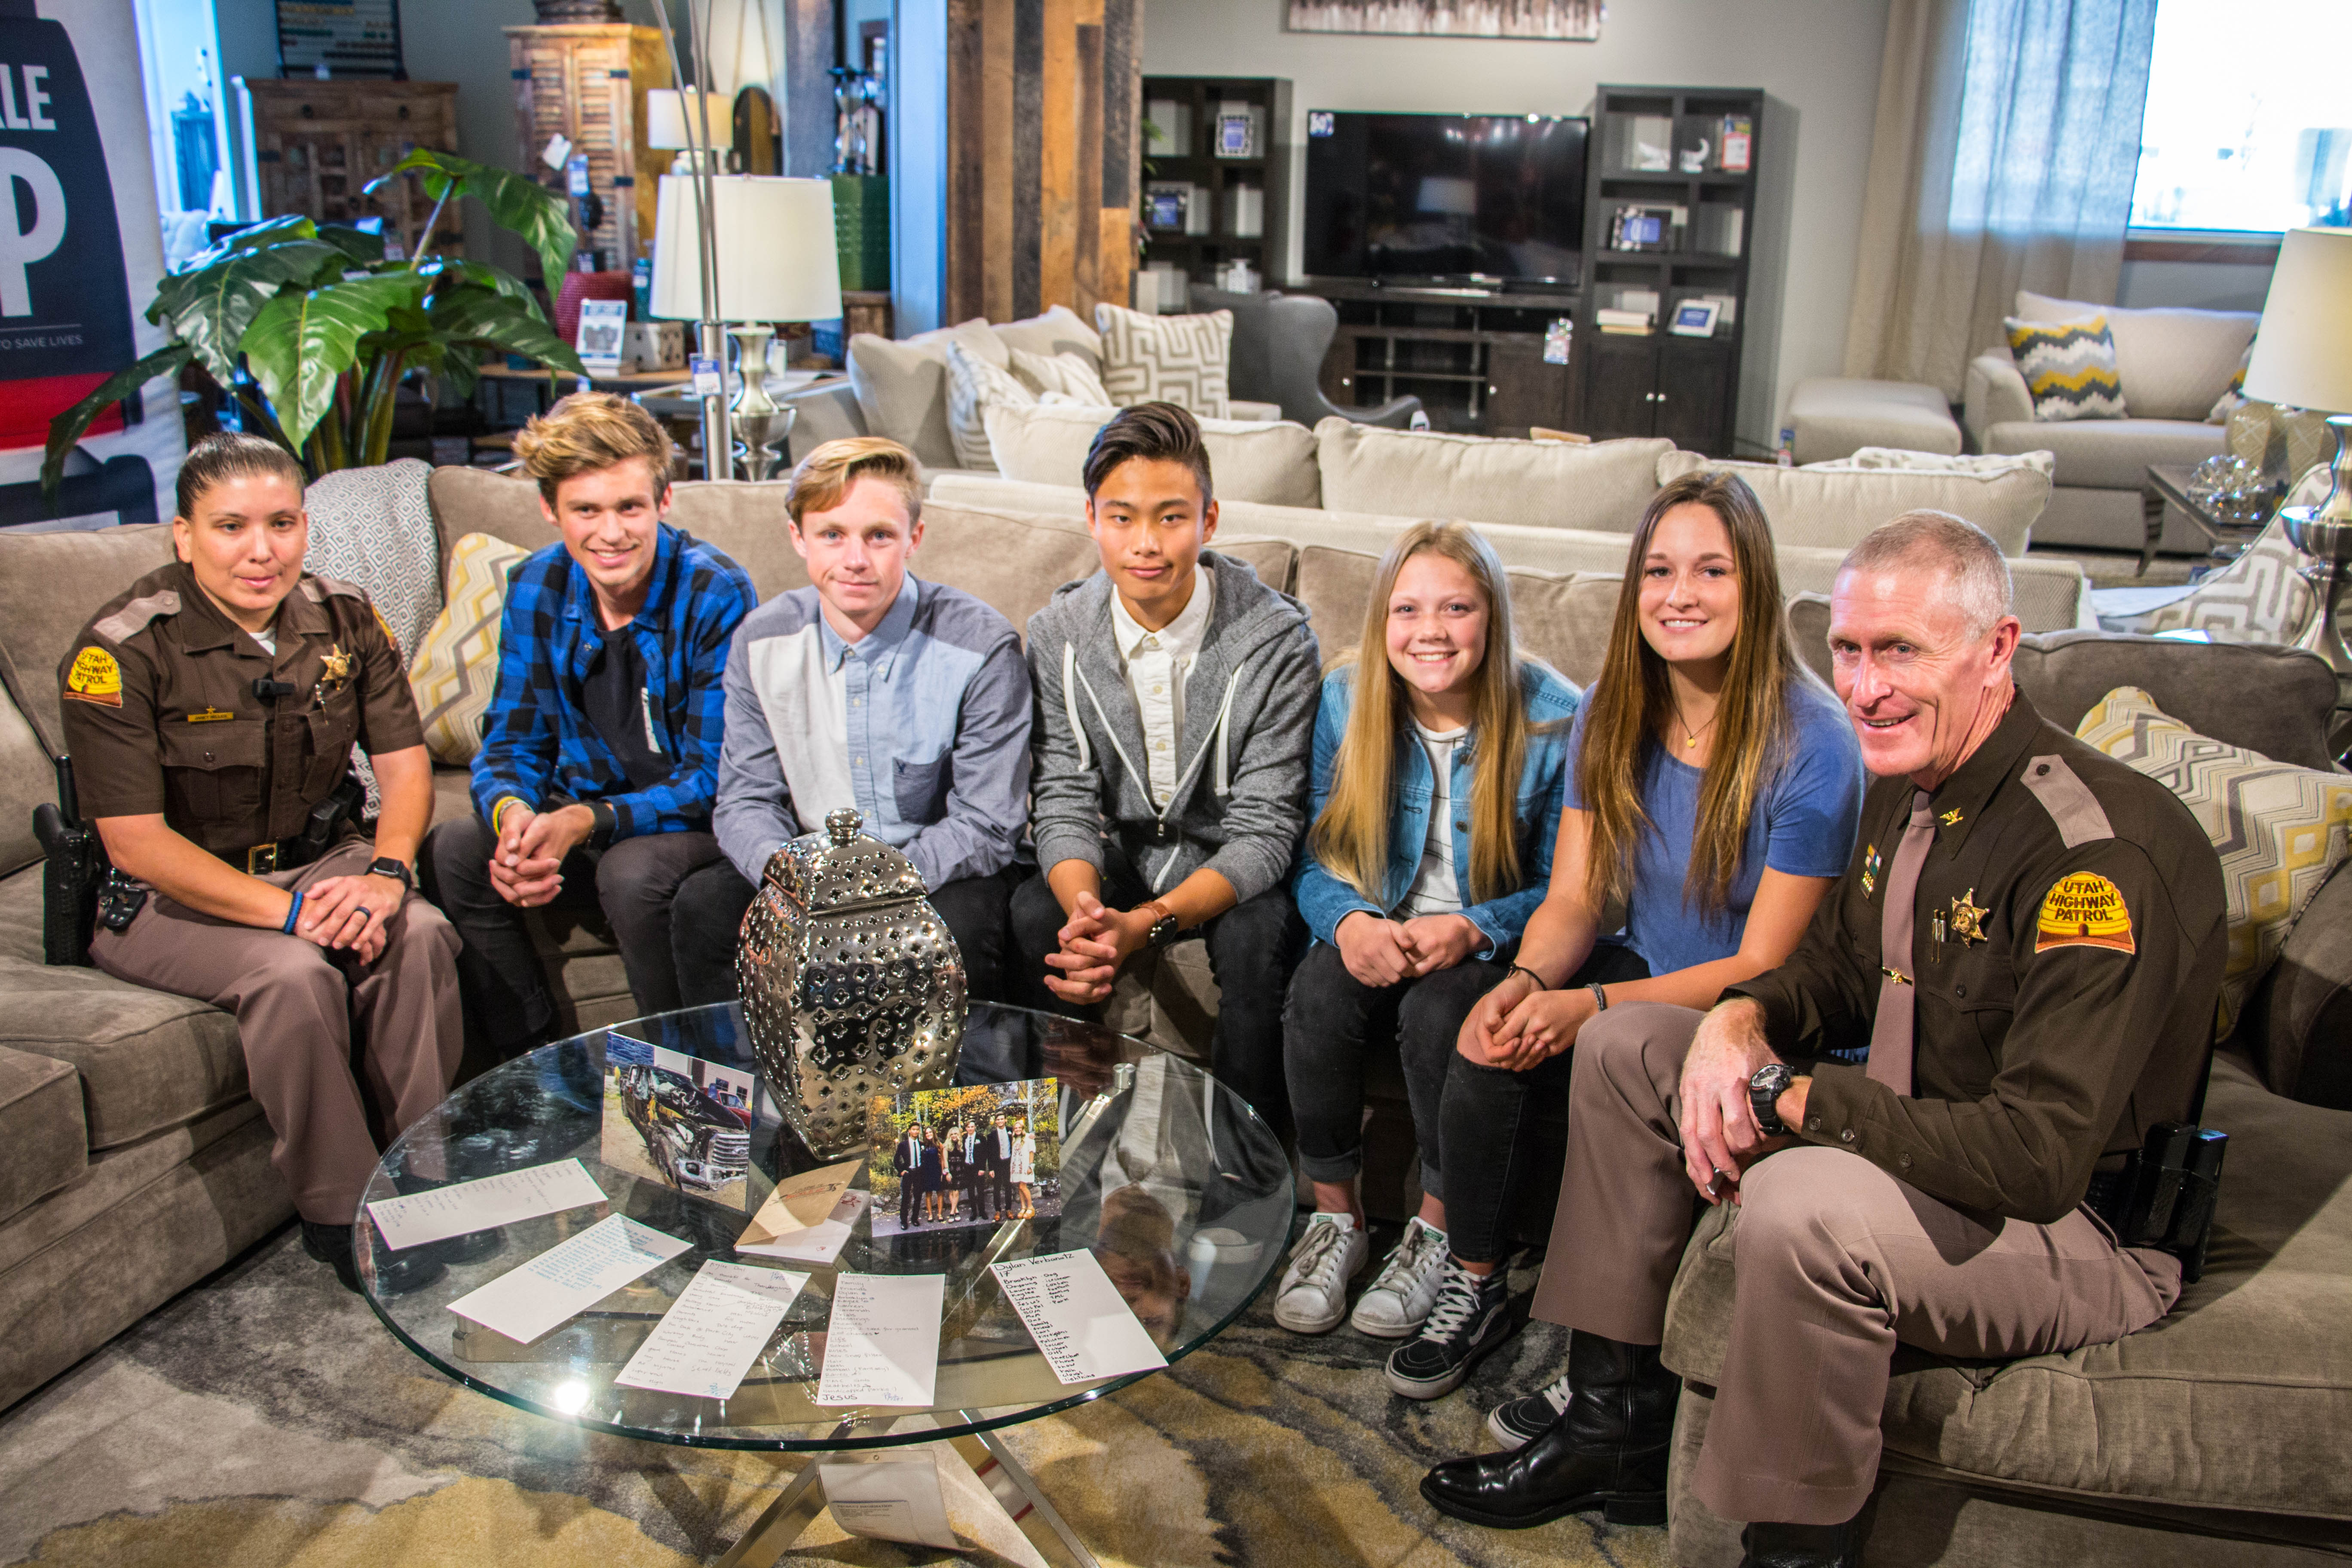 Trooper Janet Miller and Colonel Rapich sit with teens who survived crash because of seat belts